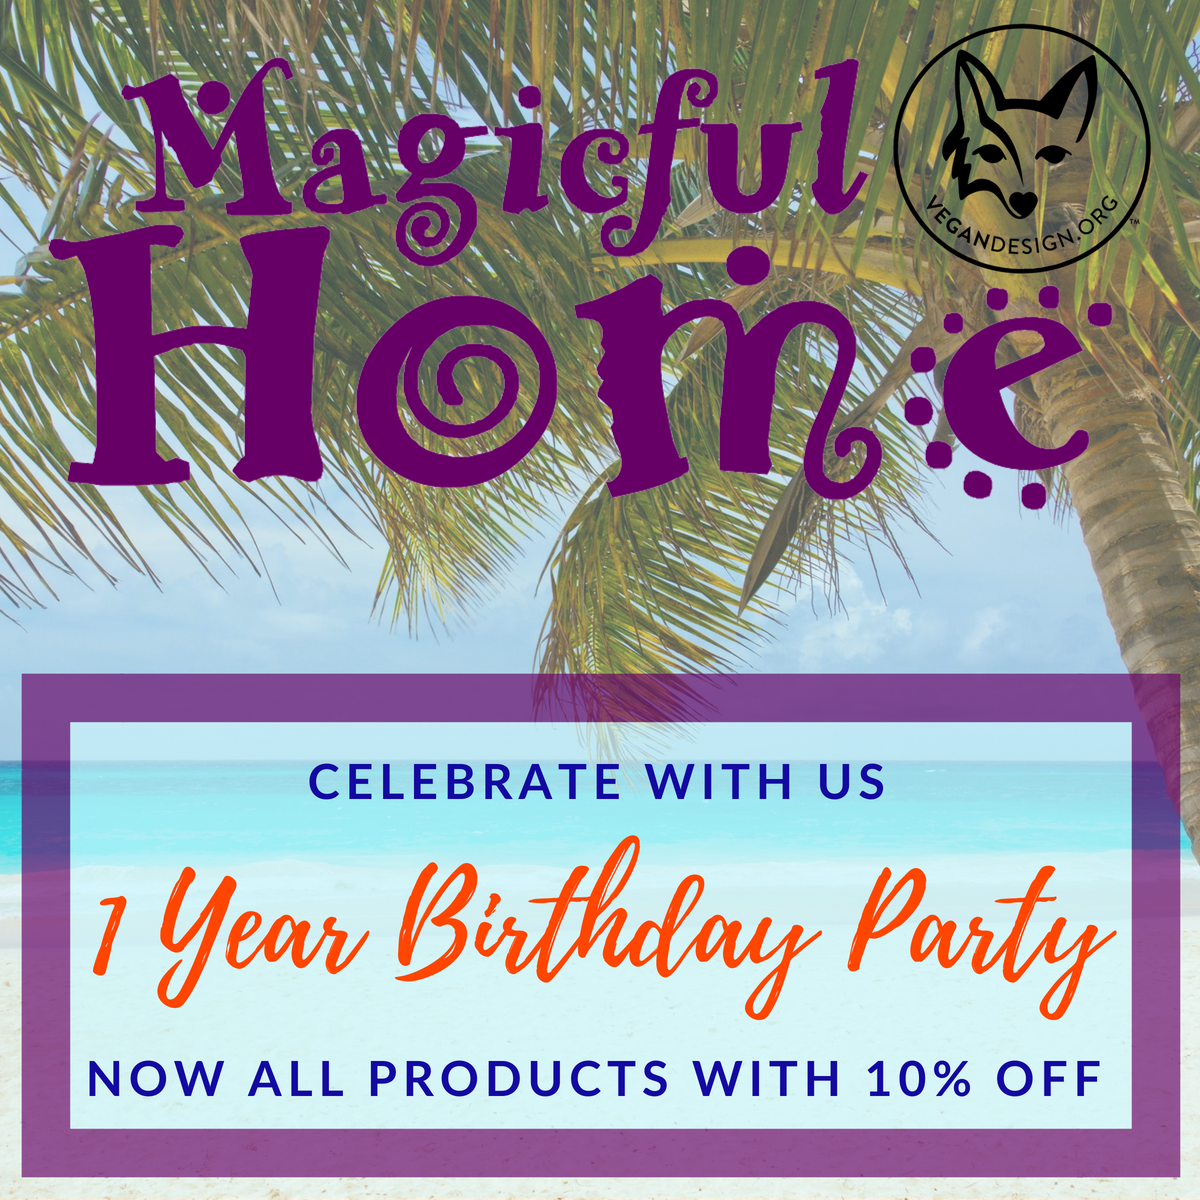 Magicful Home On Twitter Celebrate With Us 1 Year